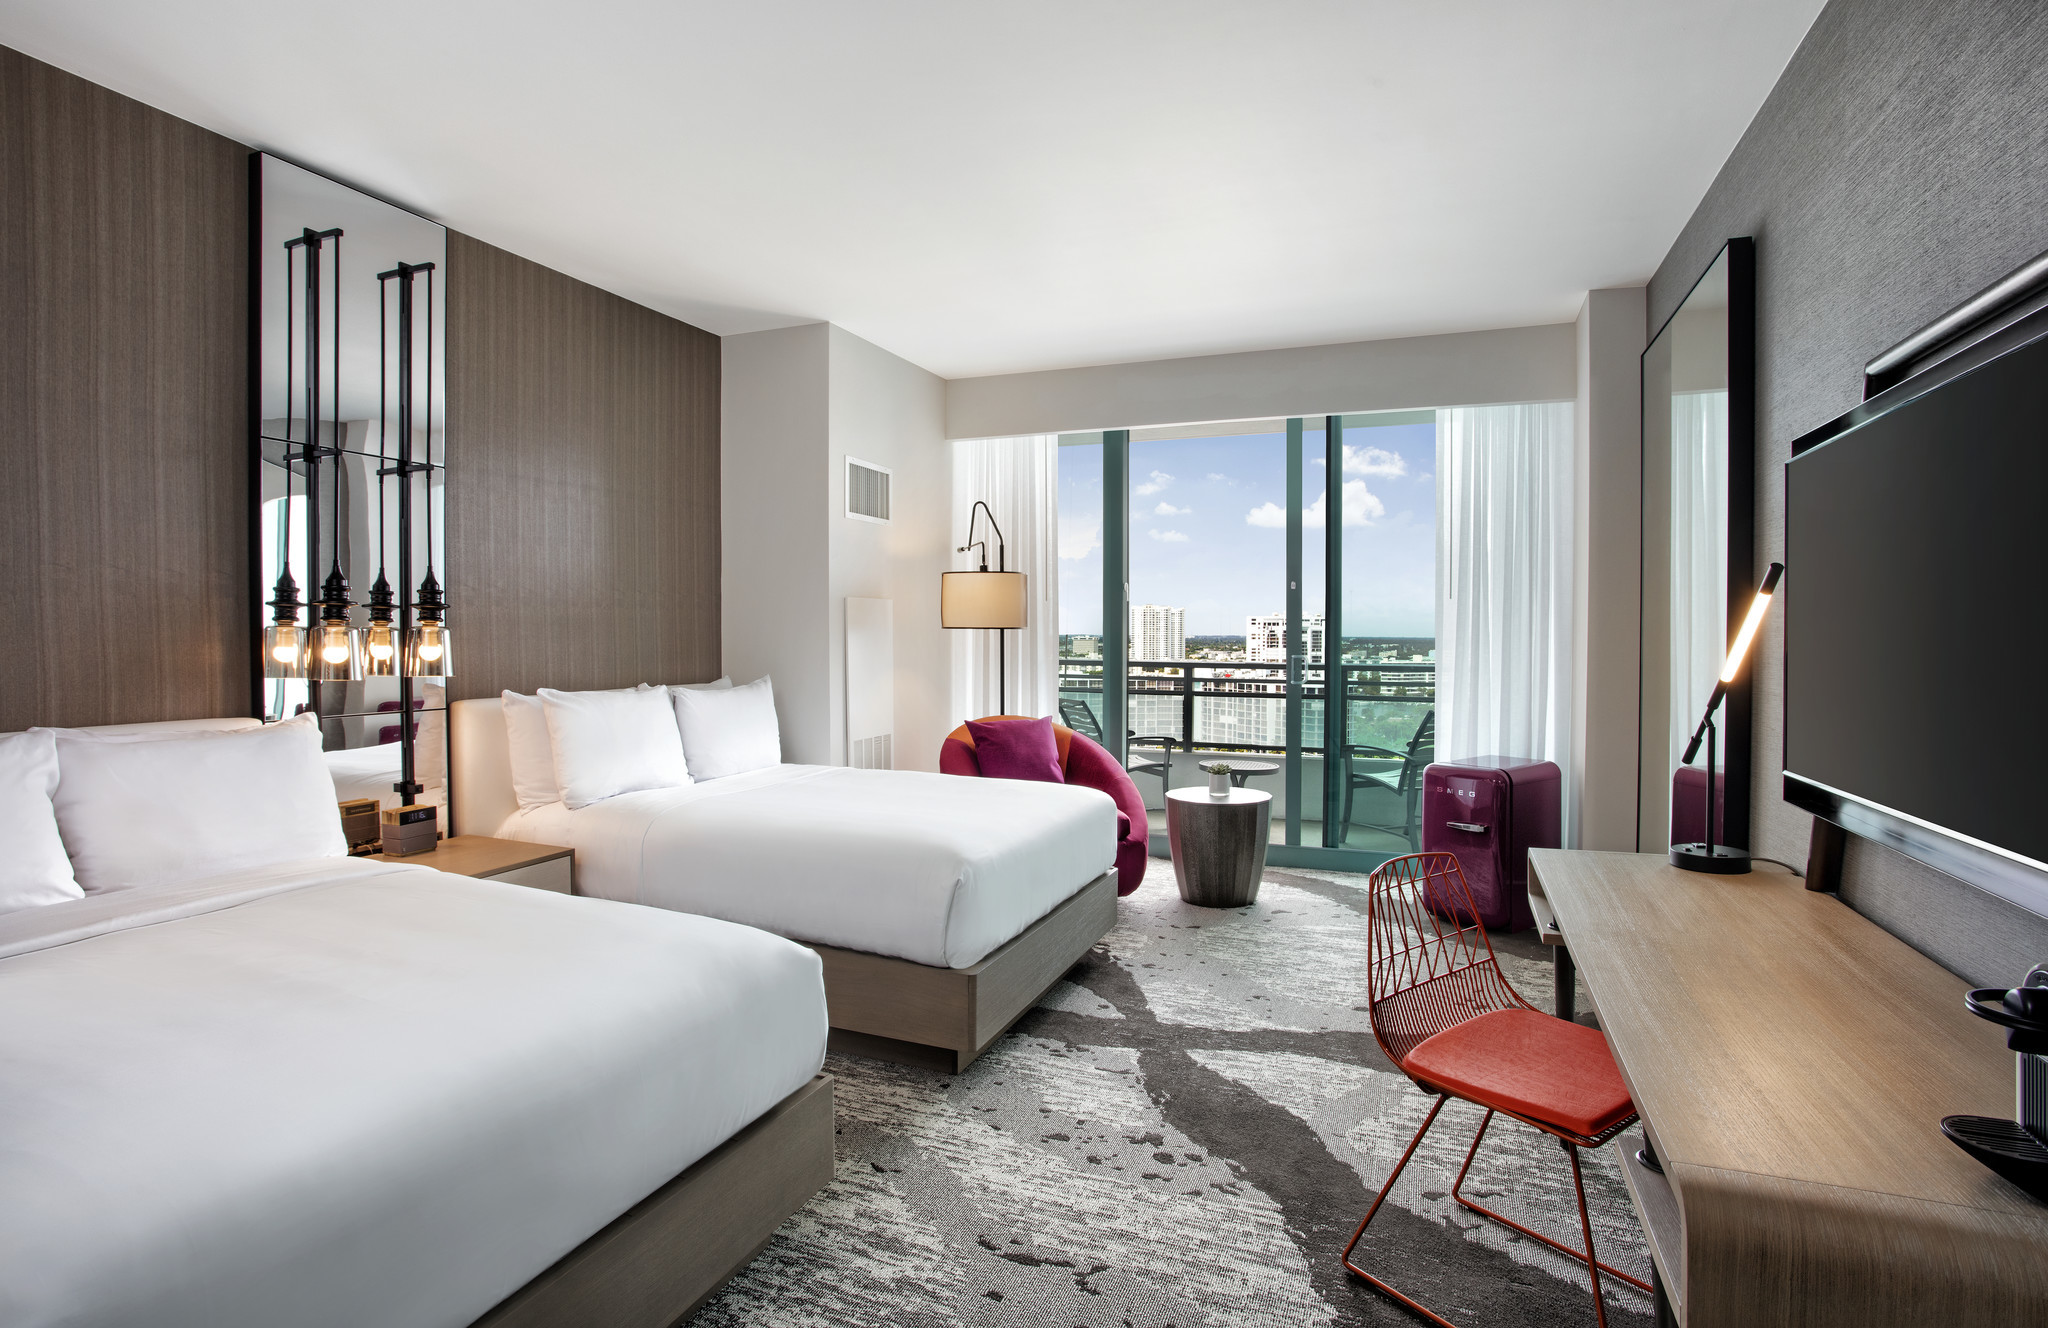 Hollywood S Diplomat Resort To Debut New Name In Mid